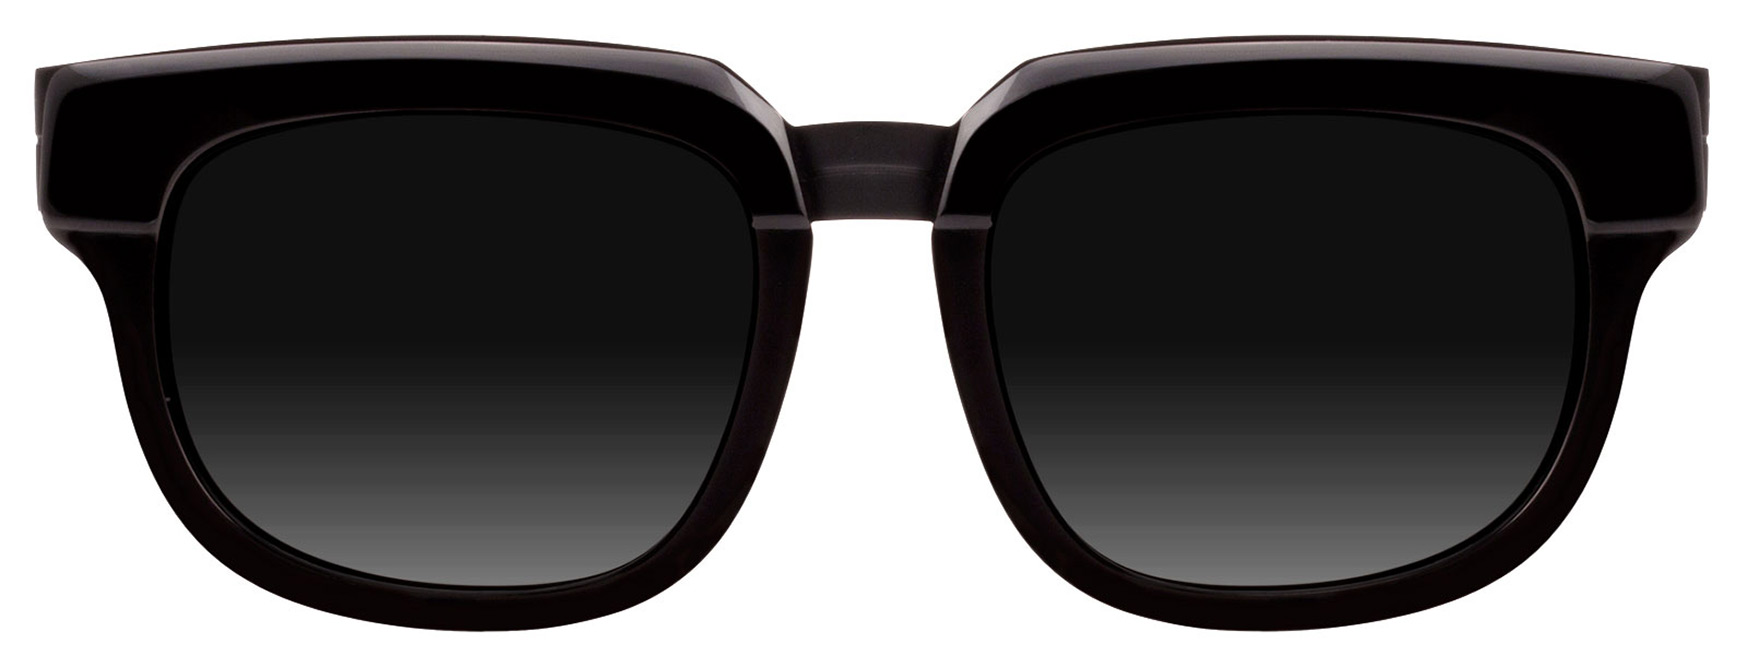 moscot-2013-sun-collection-sunglasses-04